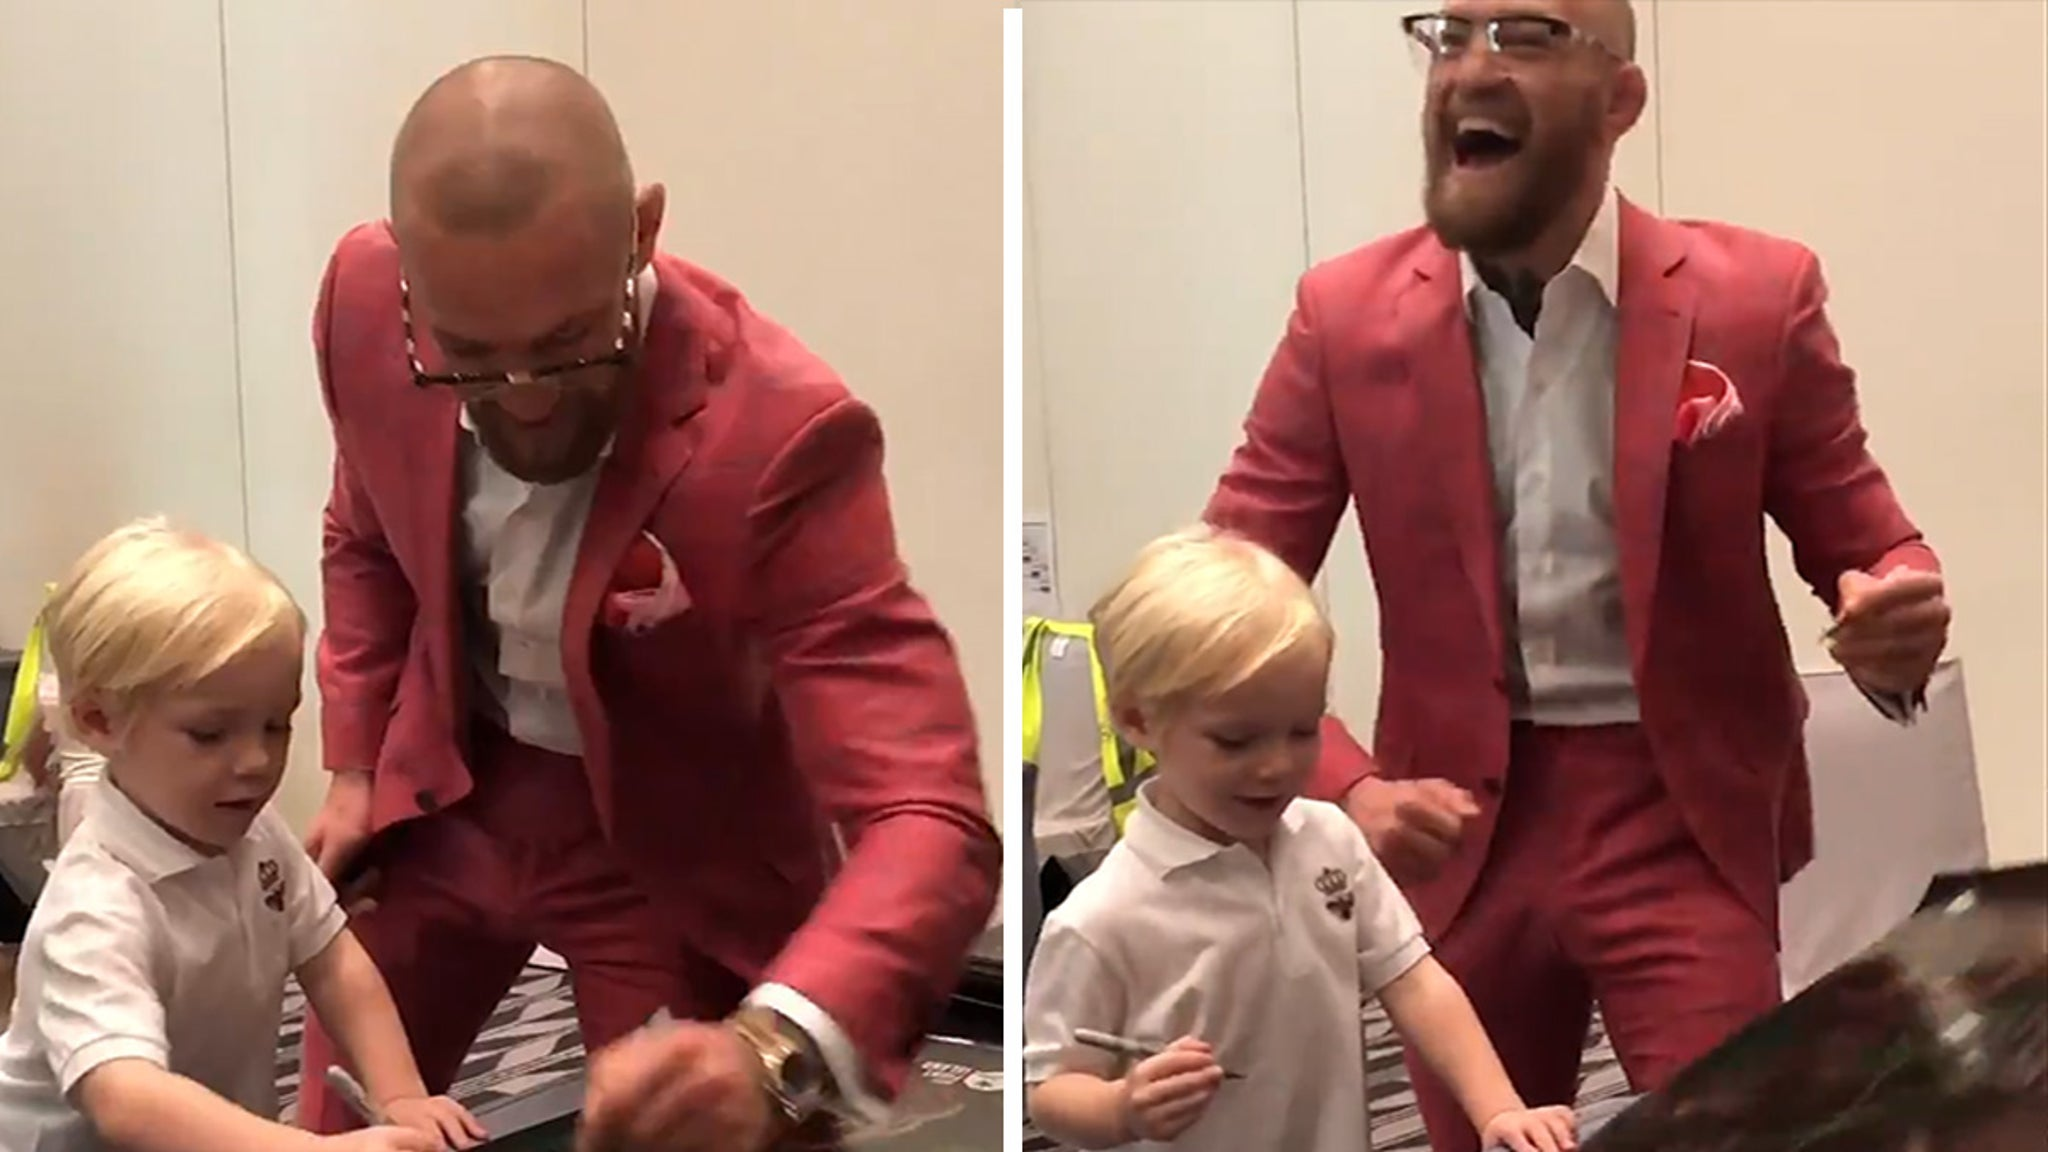 Conor McGregor Jr. Adorable Poster Signing Sesh W/ Dad ... Ahead Of UFC 257